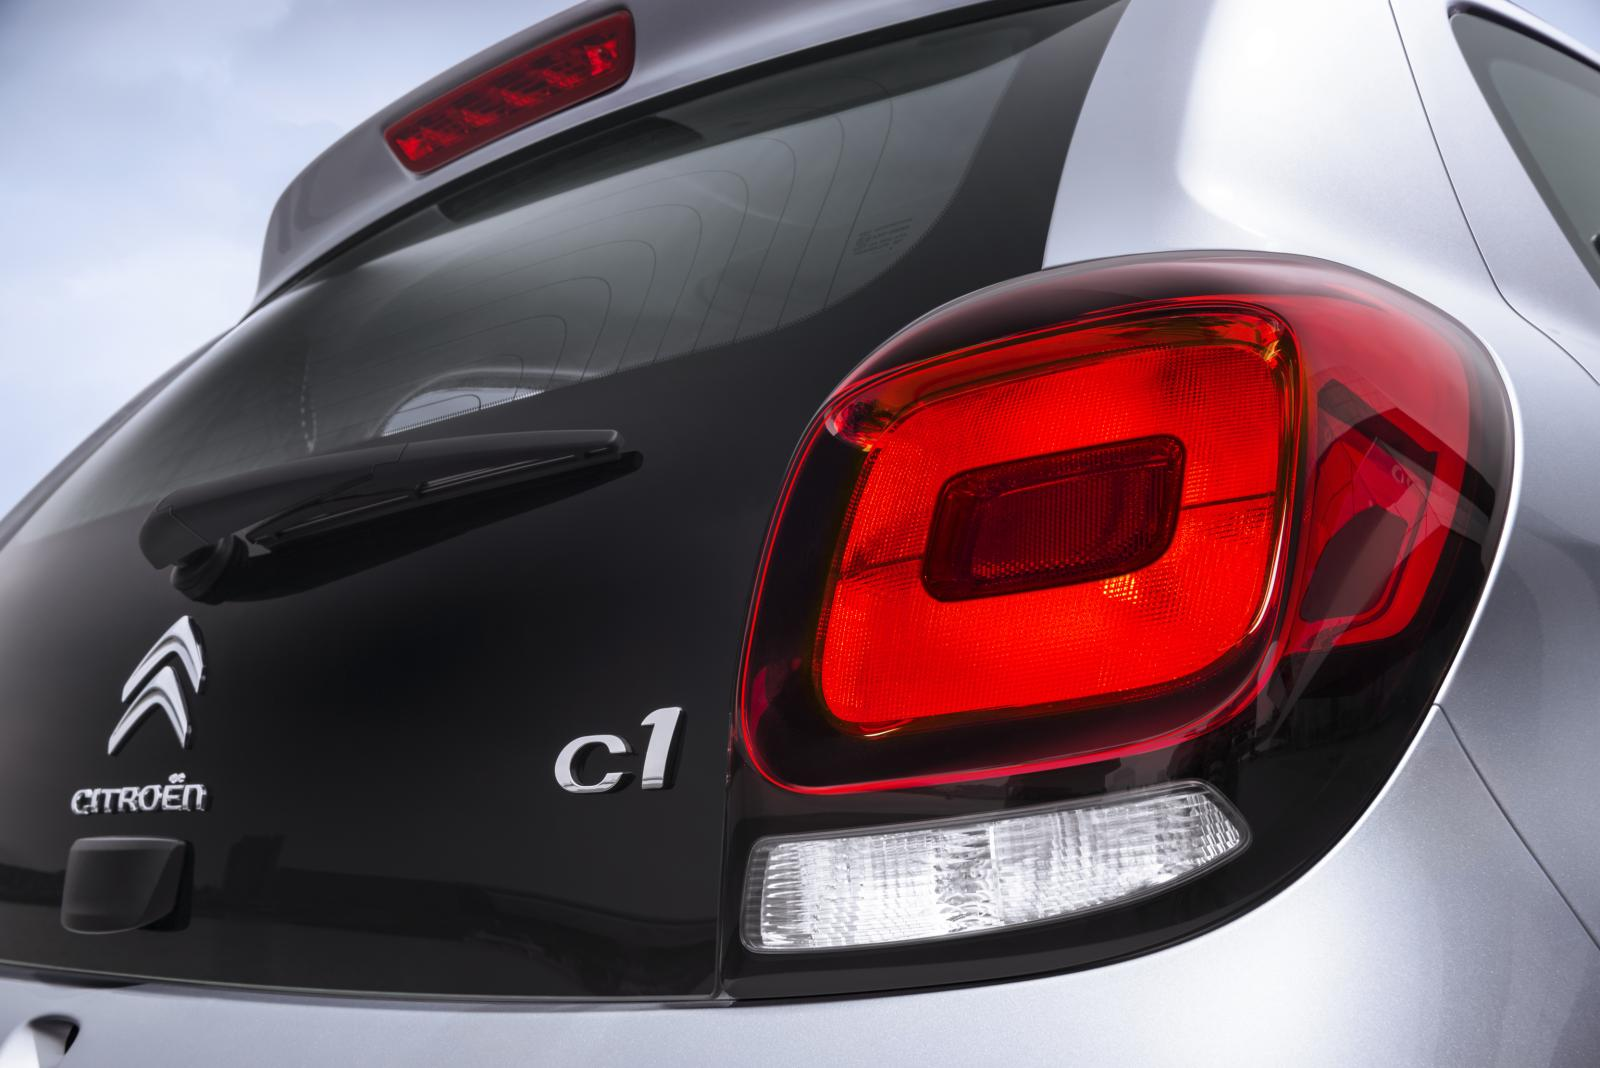 C1 2014 rear light